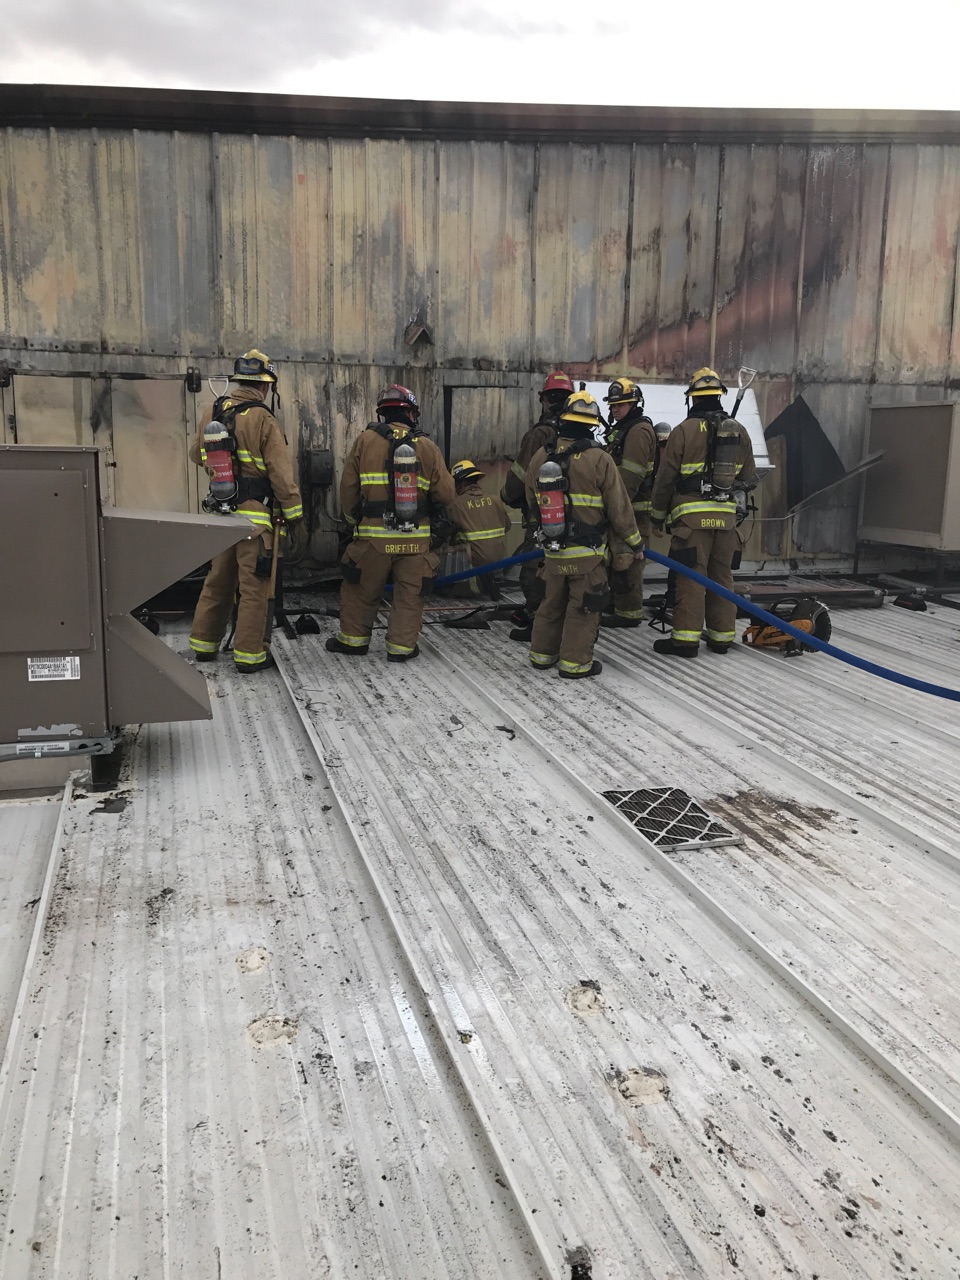 Firefighters are seen at a large commercial pistachio and almond processing facility near Lost Hills, Calif., following a fire Nov. 16, 2017. (Photo from KCFD)